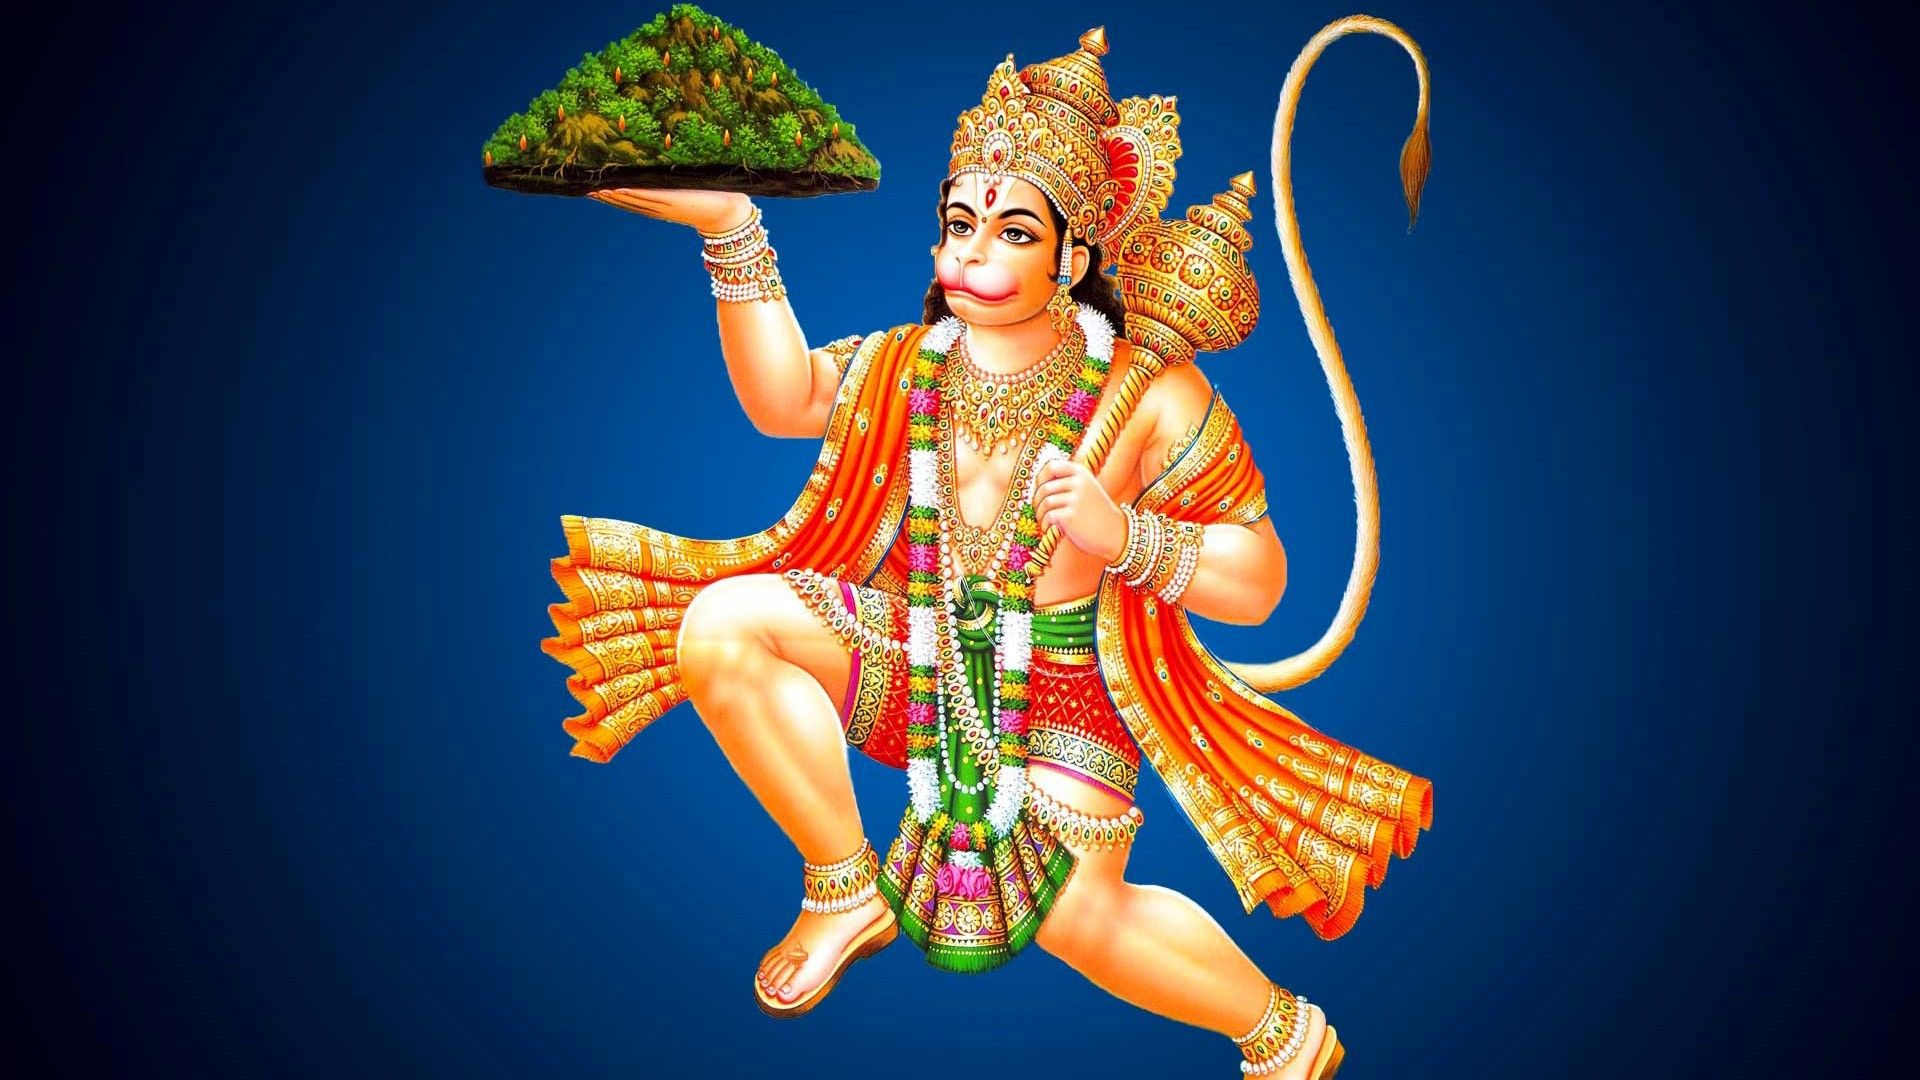 Lord Hanuman Bajrangbali Bajrang Bali Image Hd 779307 Hd Wallpaper Backgrounds Download